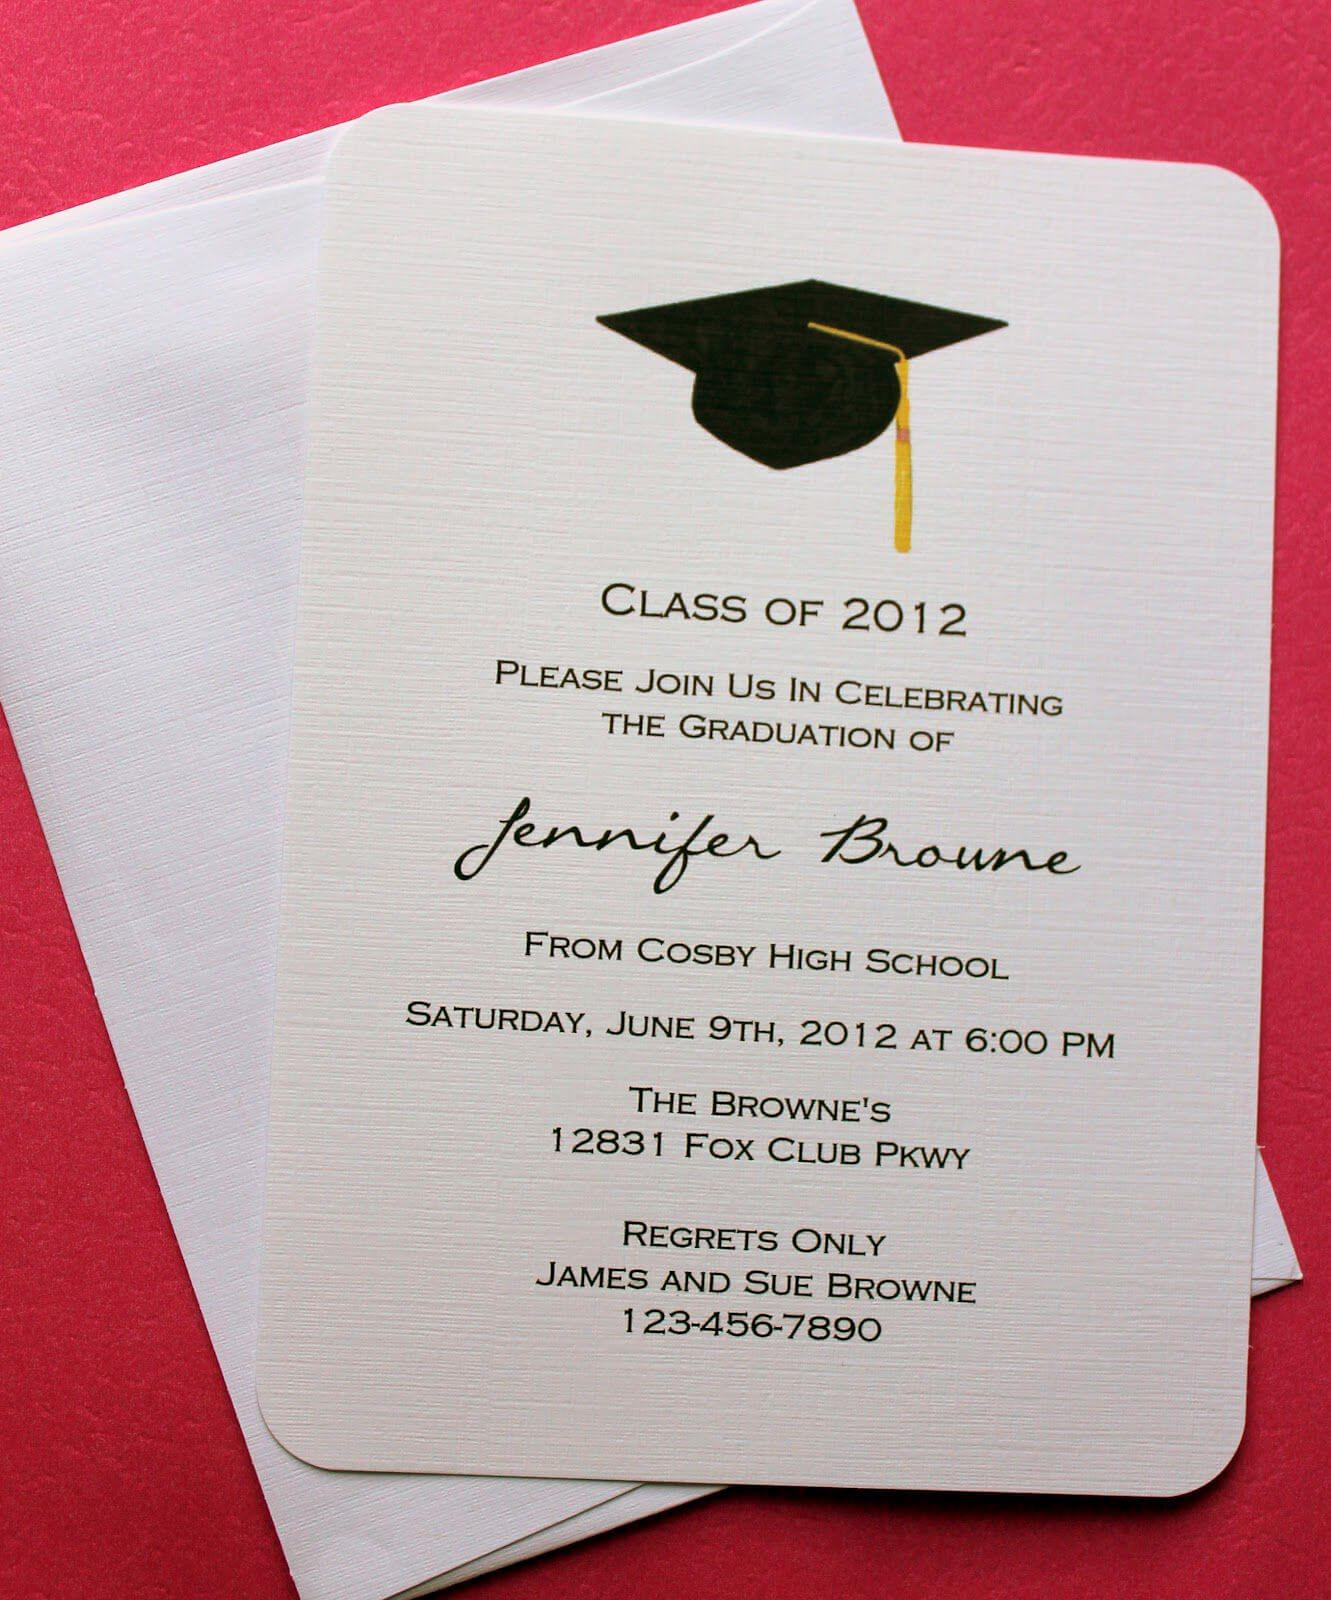 Graduation Invitation Templates Microsoft Word | Graduation Throughout Graduation Invitation Templates Microsoft Word